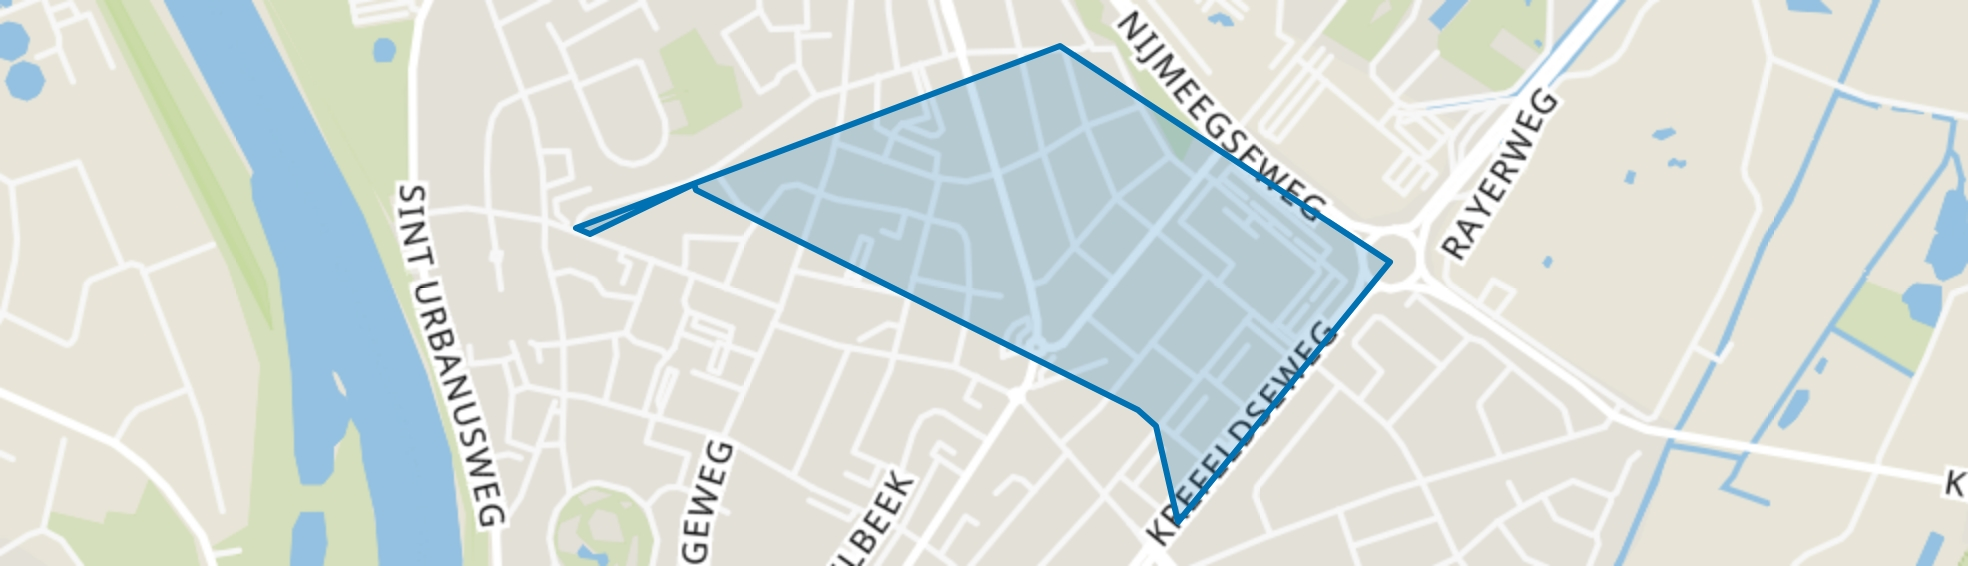 Withuis, Venlo map